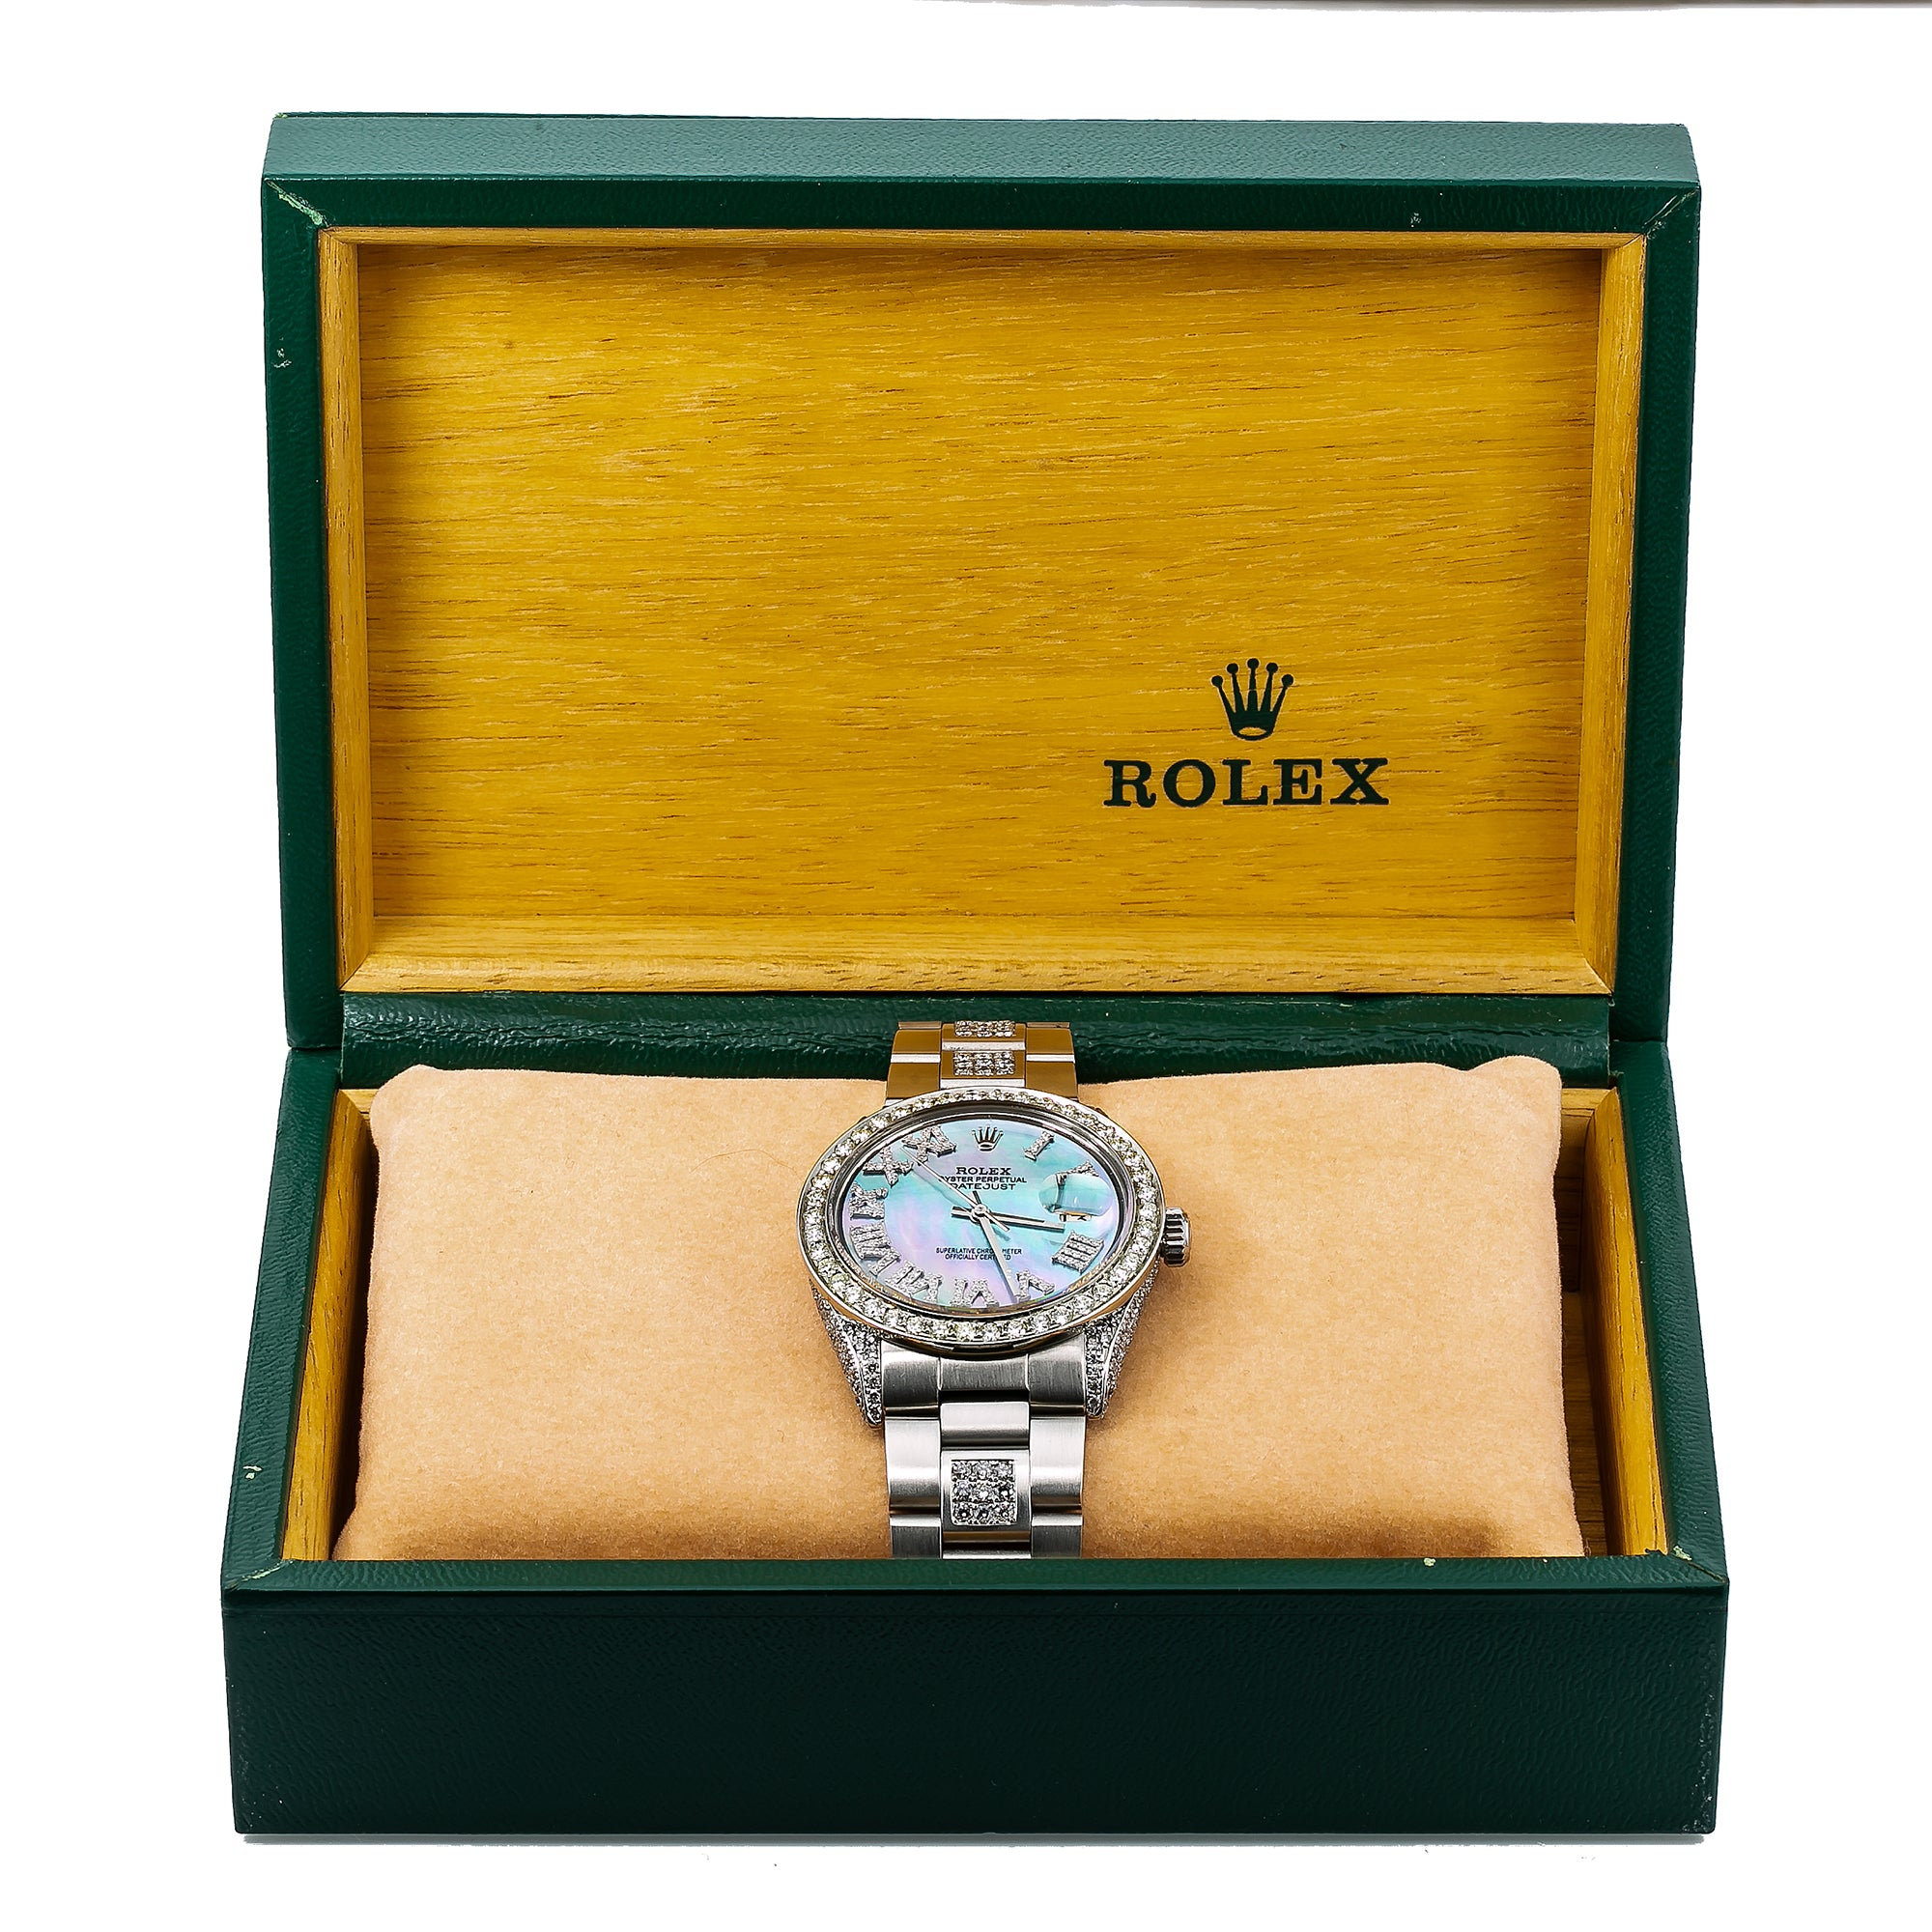 Rolex Datejust 1601 36MM Light Blue Mother of Pearl Diamond Dial With 6.75 CT Diamonds